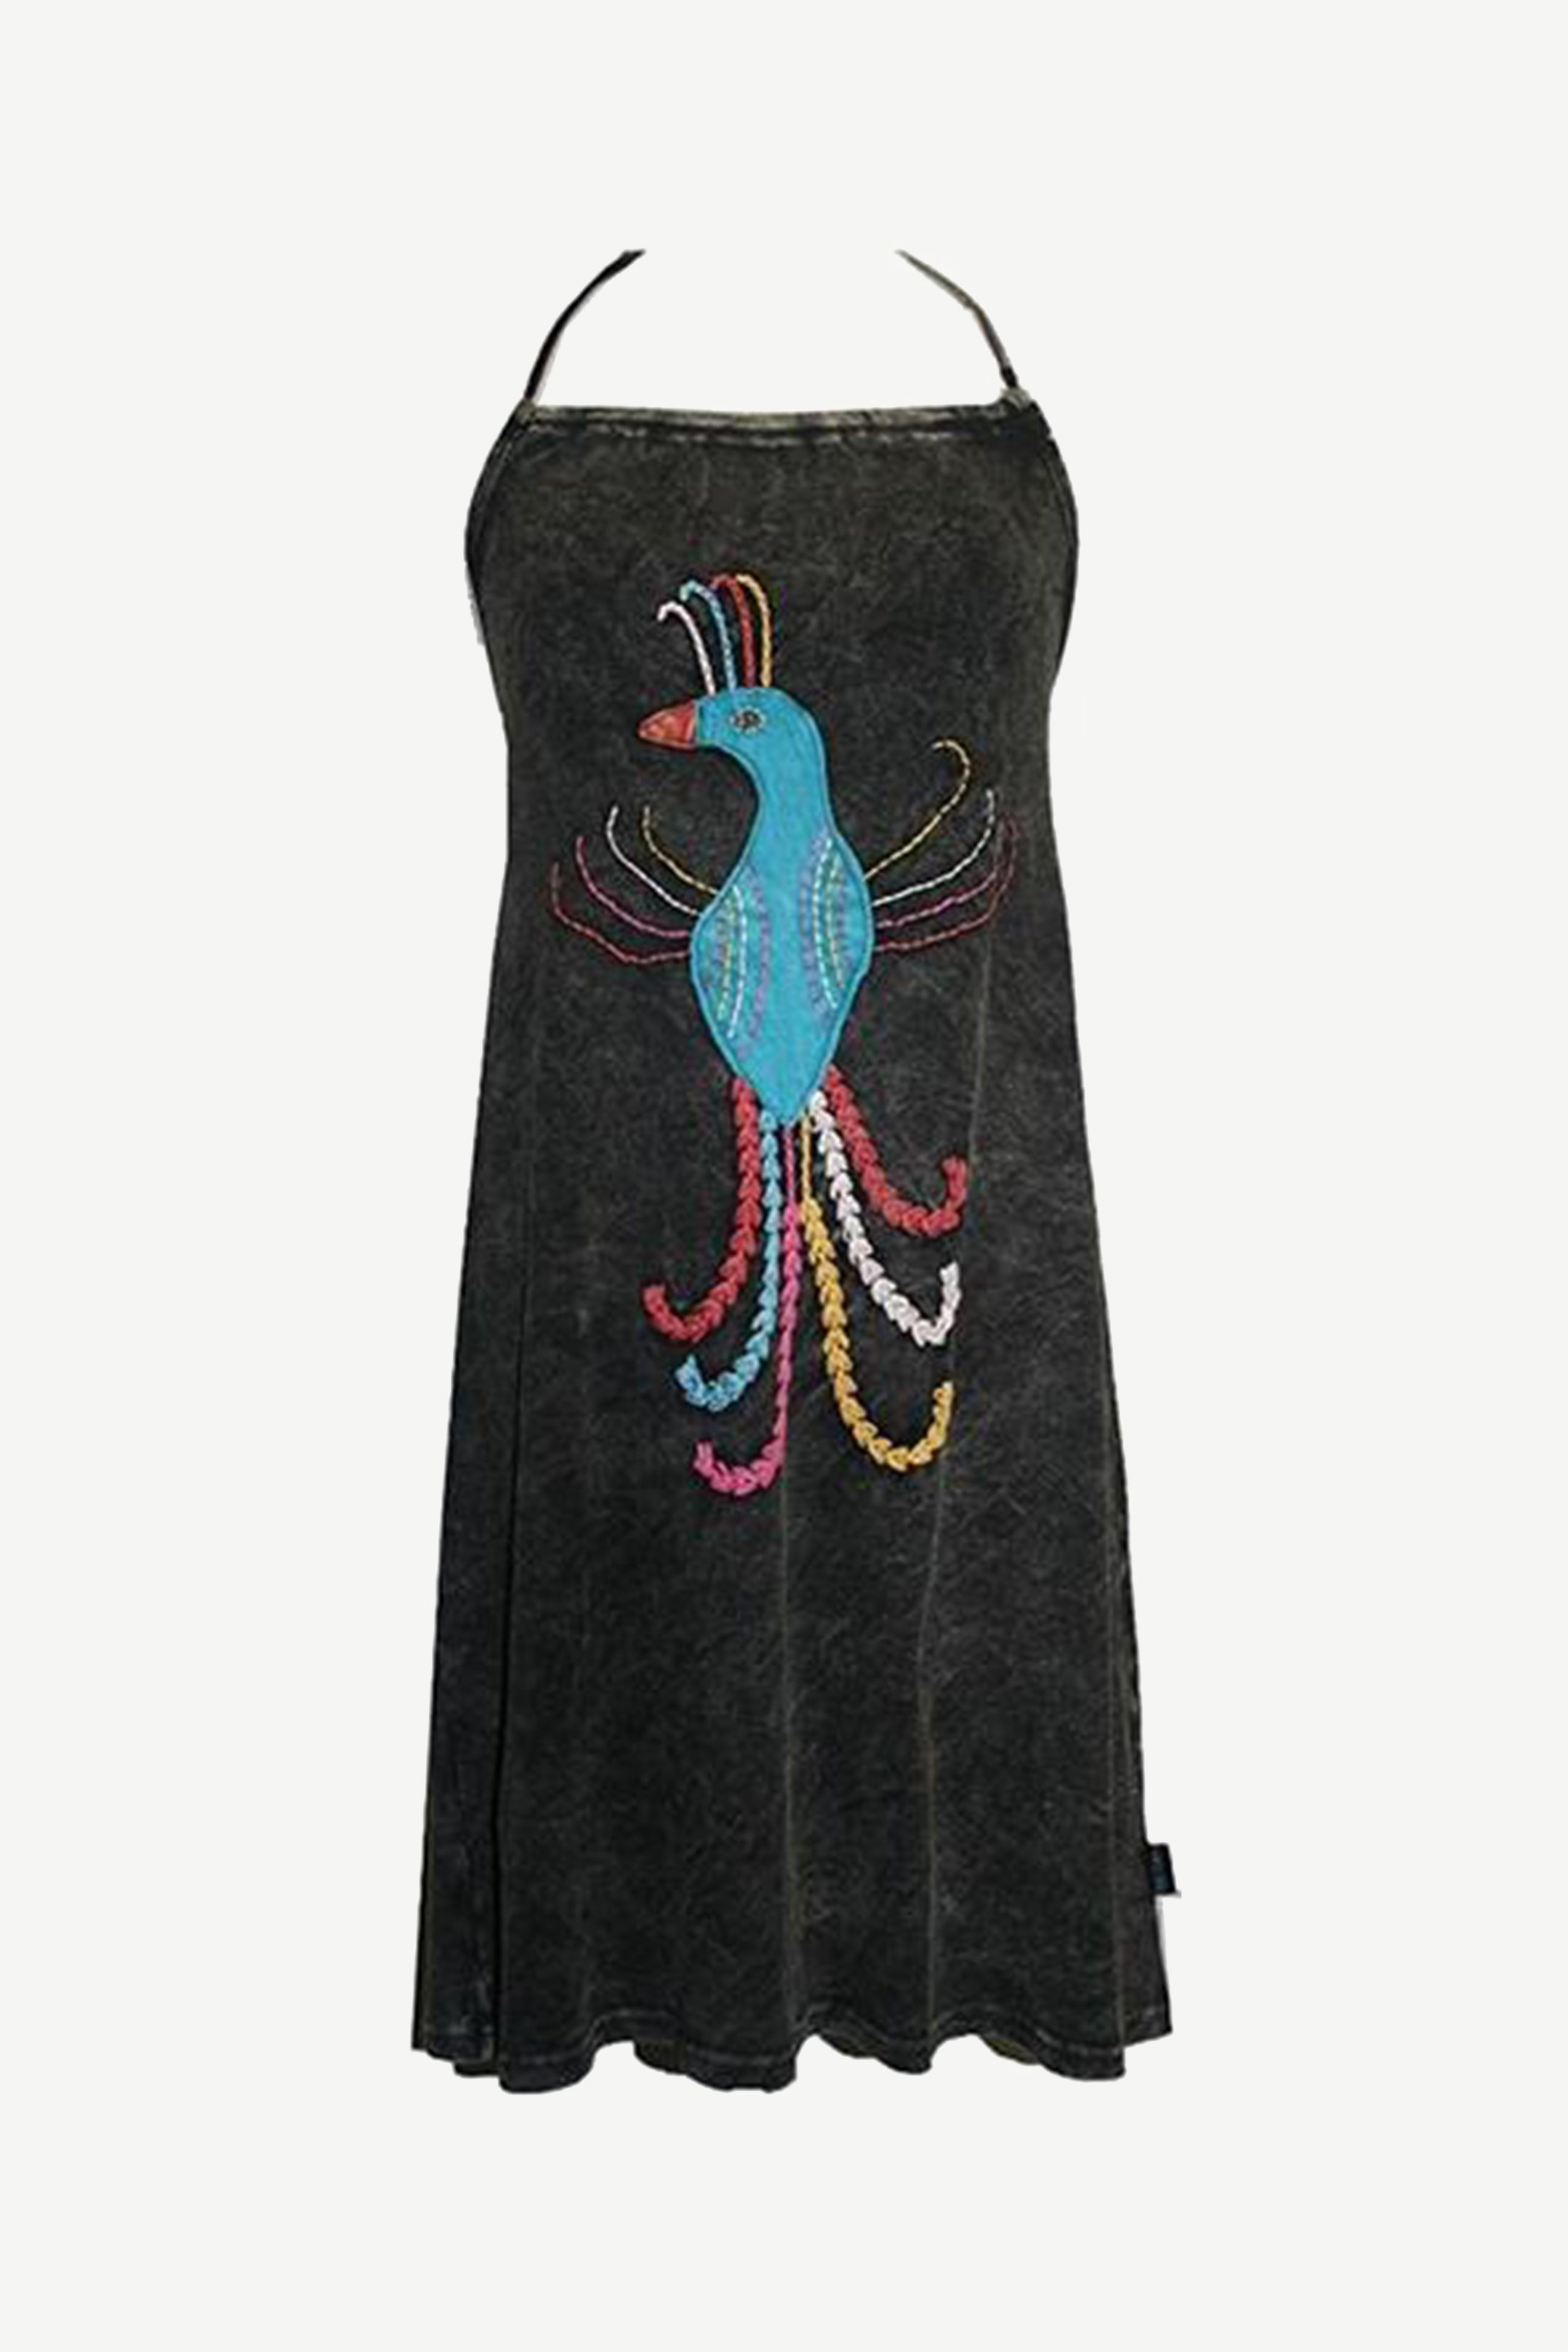 WDR 0083 Agan Traders Nepal Rib Cotton Patched Peacock Halter Summer Dress - Agan Traders, Black